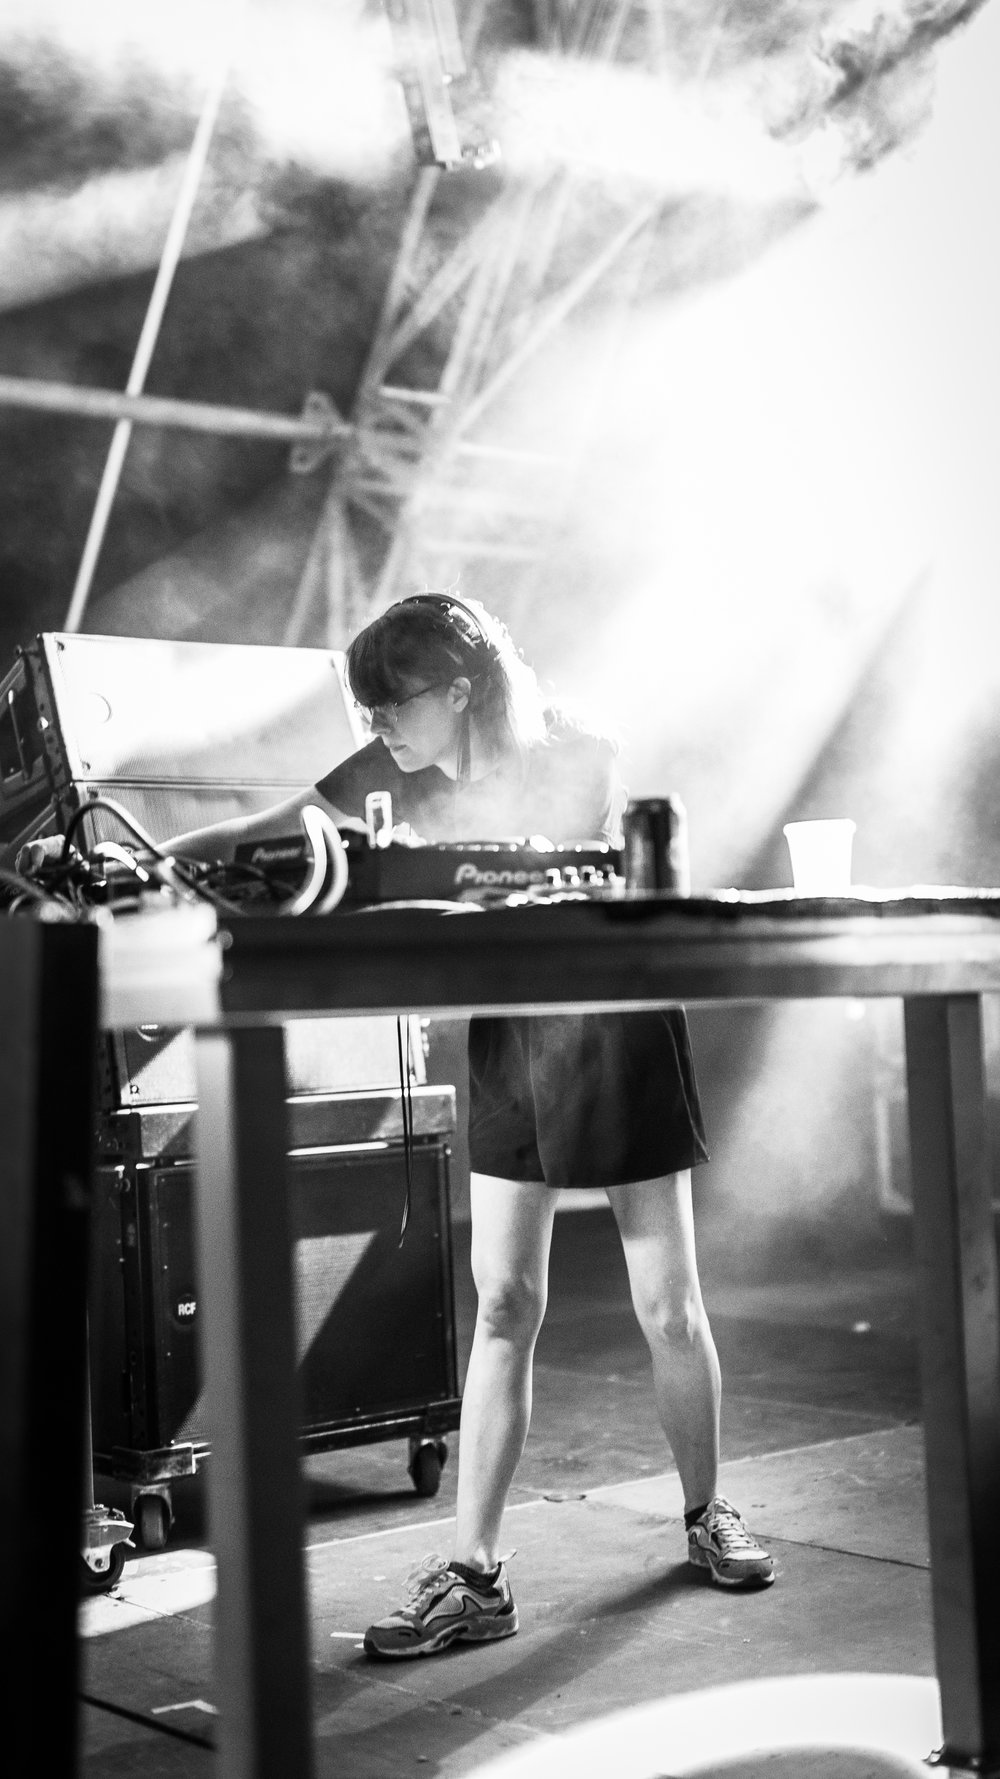 Avalon Emerson at Dimensions Festival 2018